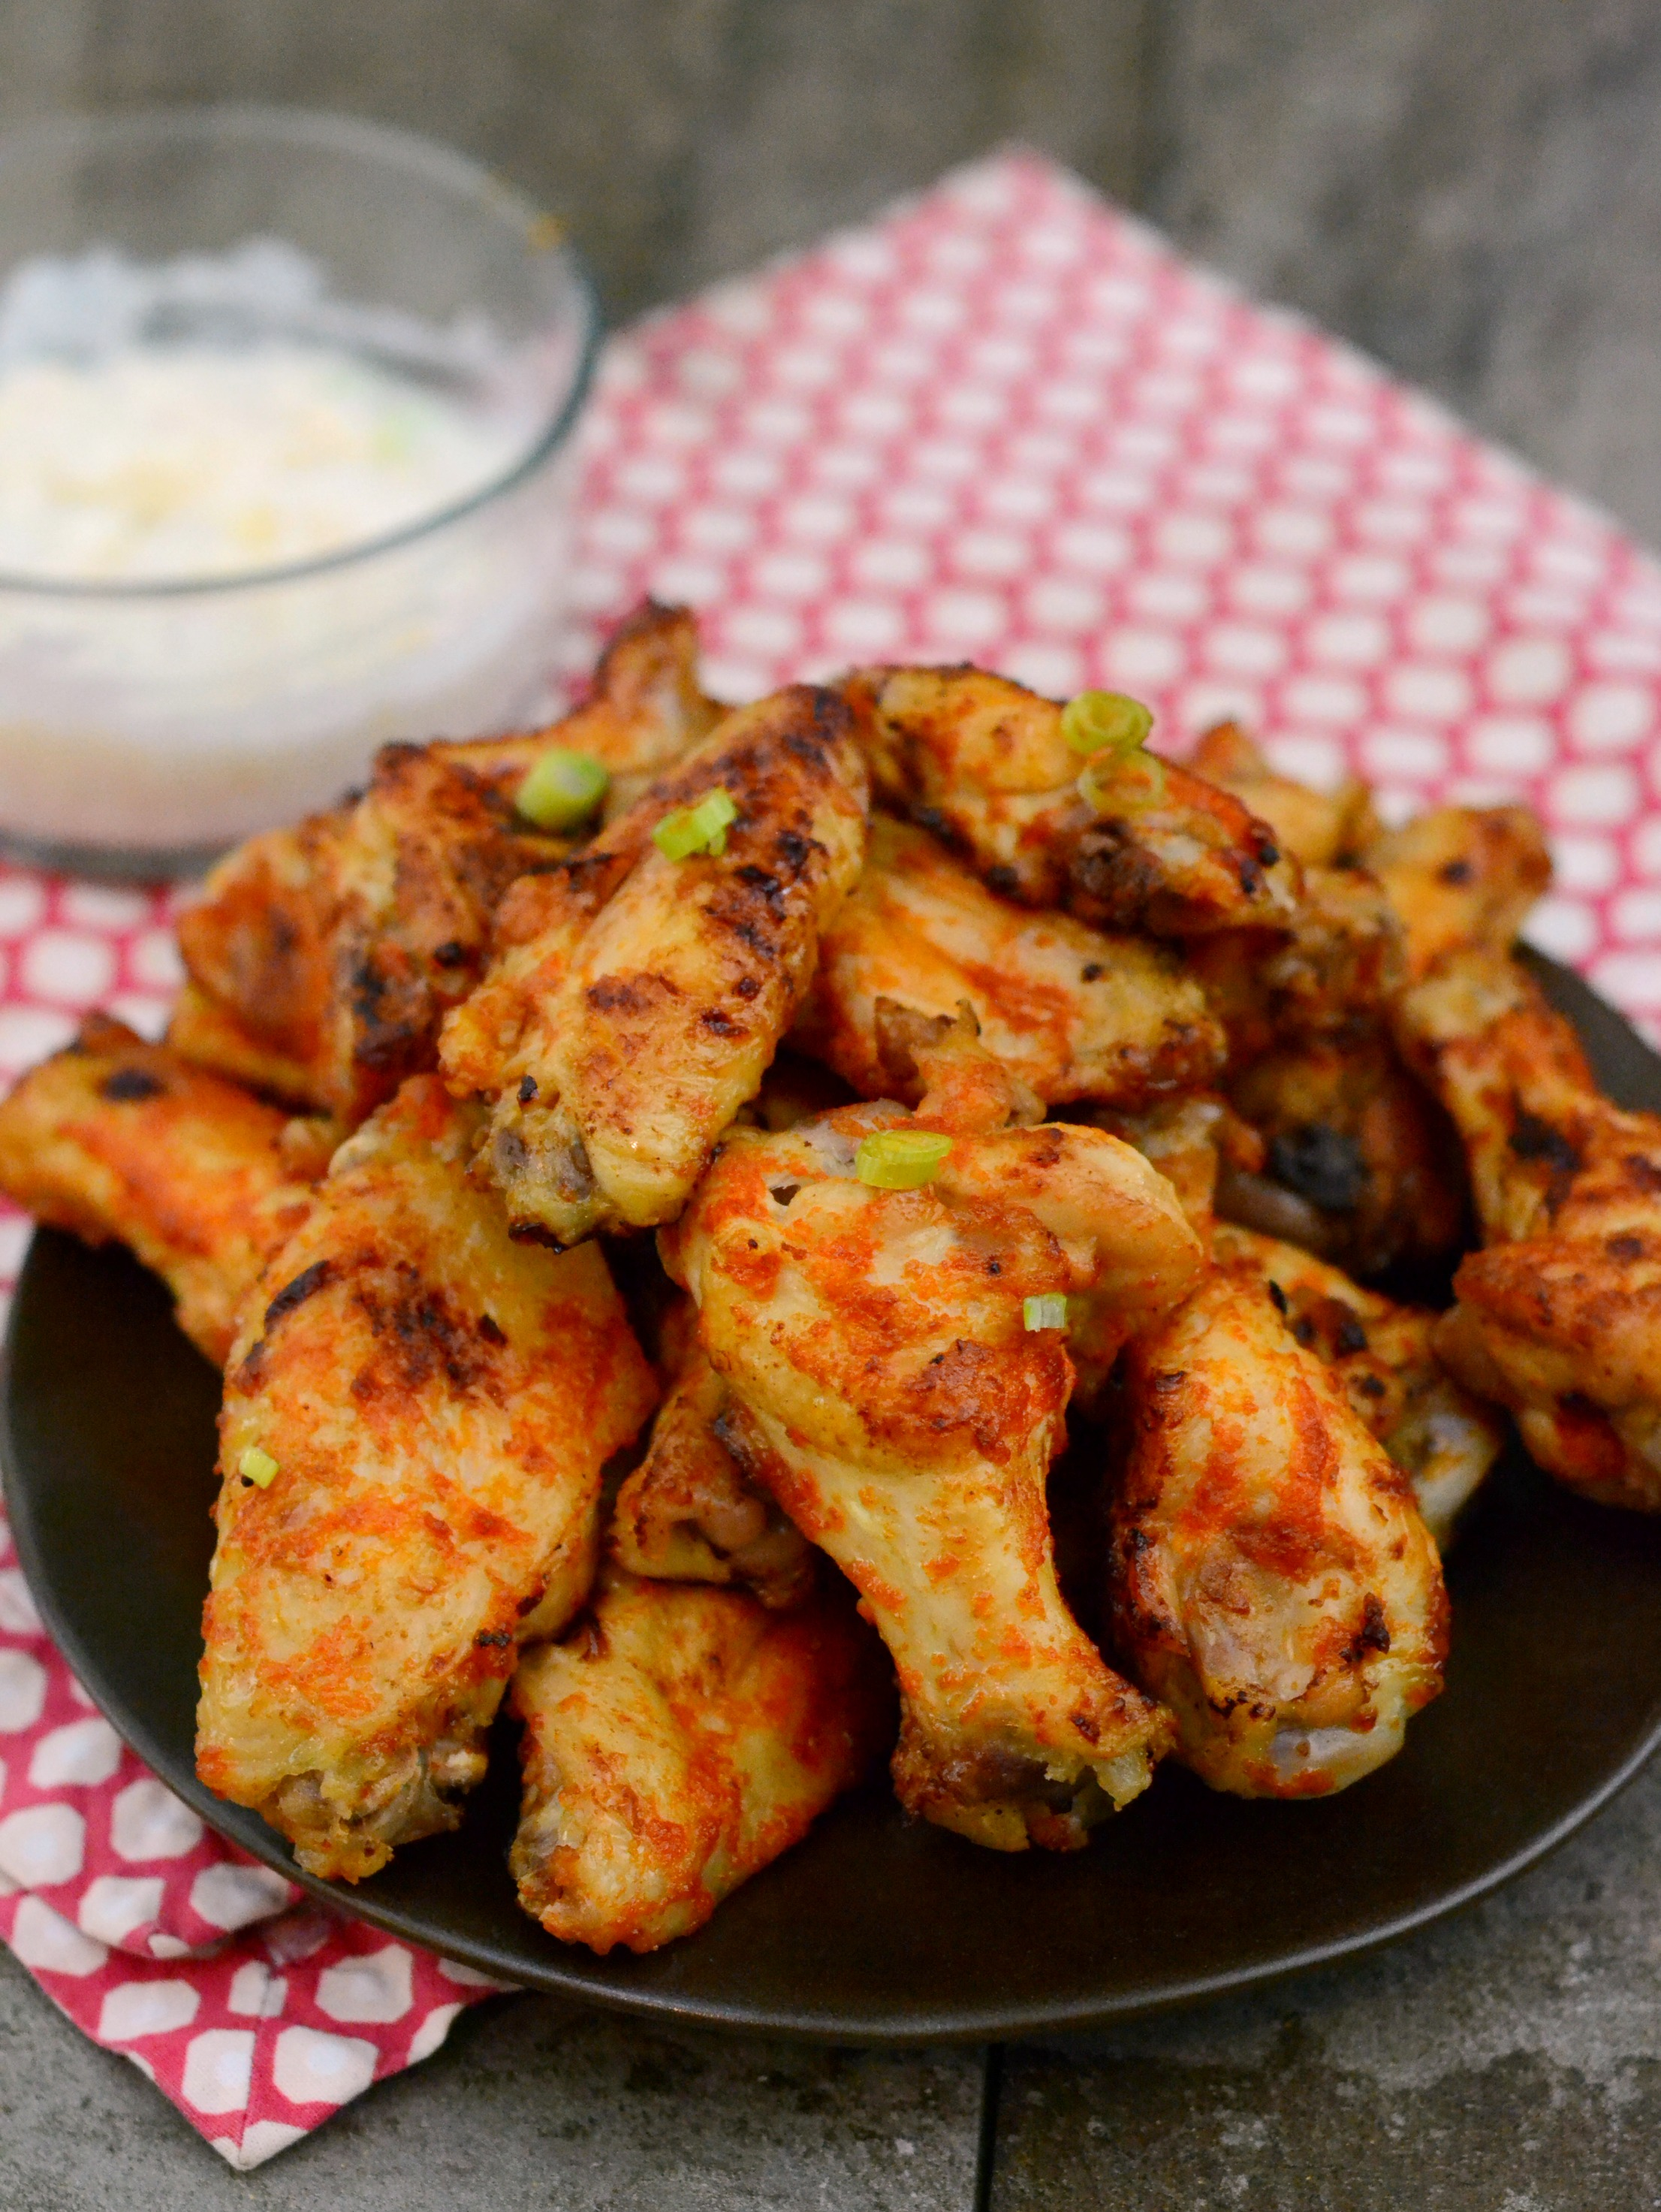 platter of spicy baked chicken wings